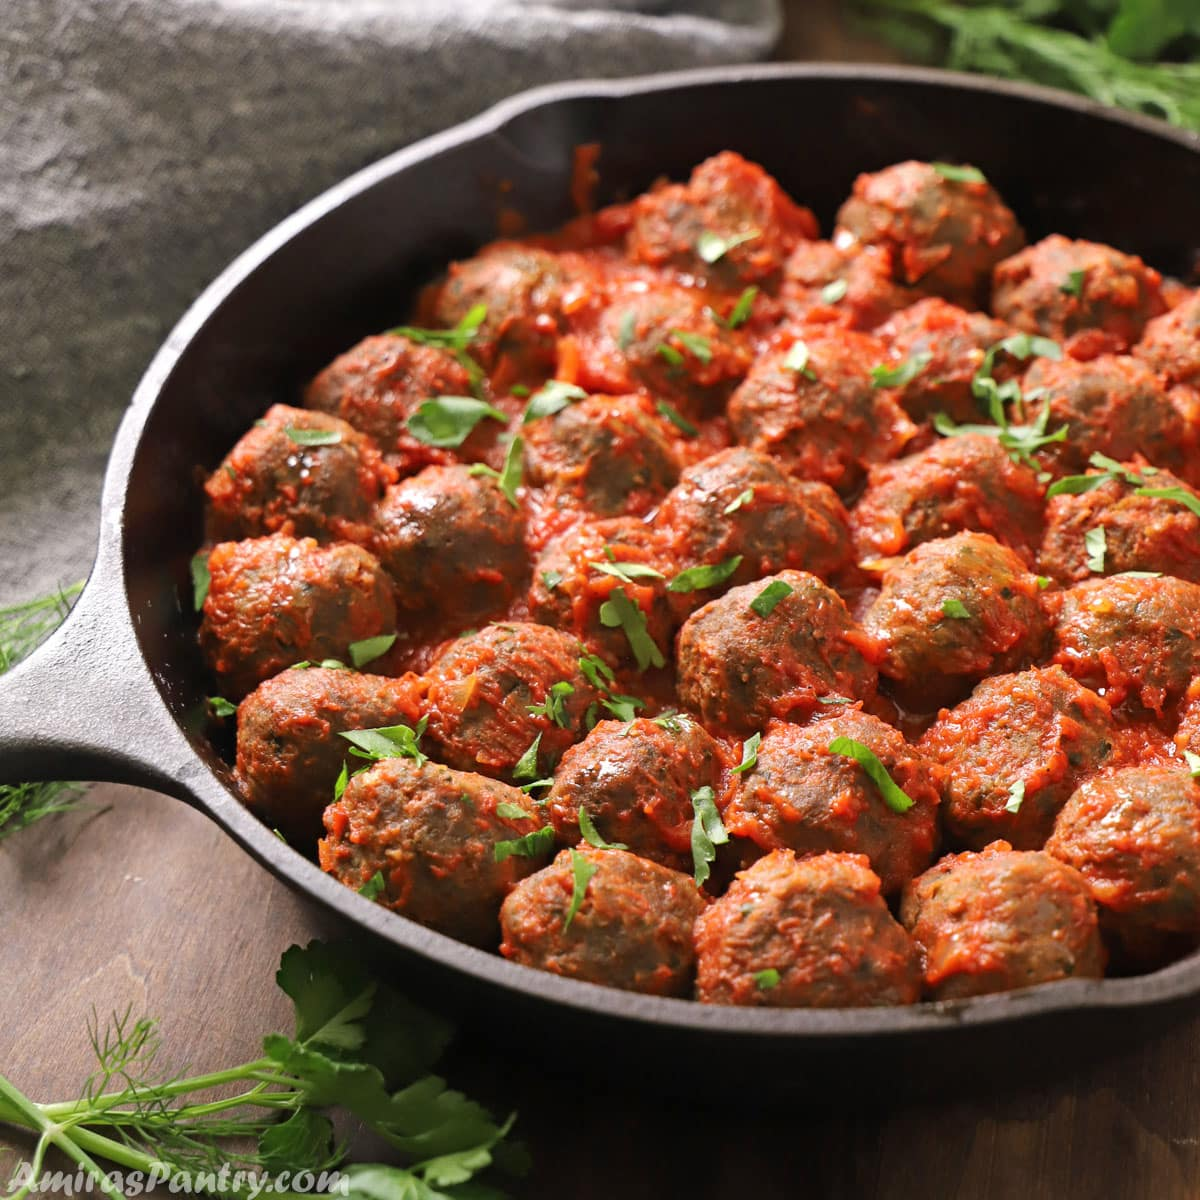 meatballs in a cast iron skillet with tomato sauce and garnished with parsley.